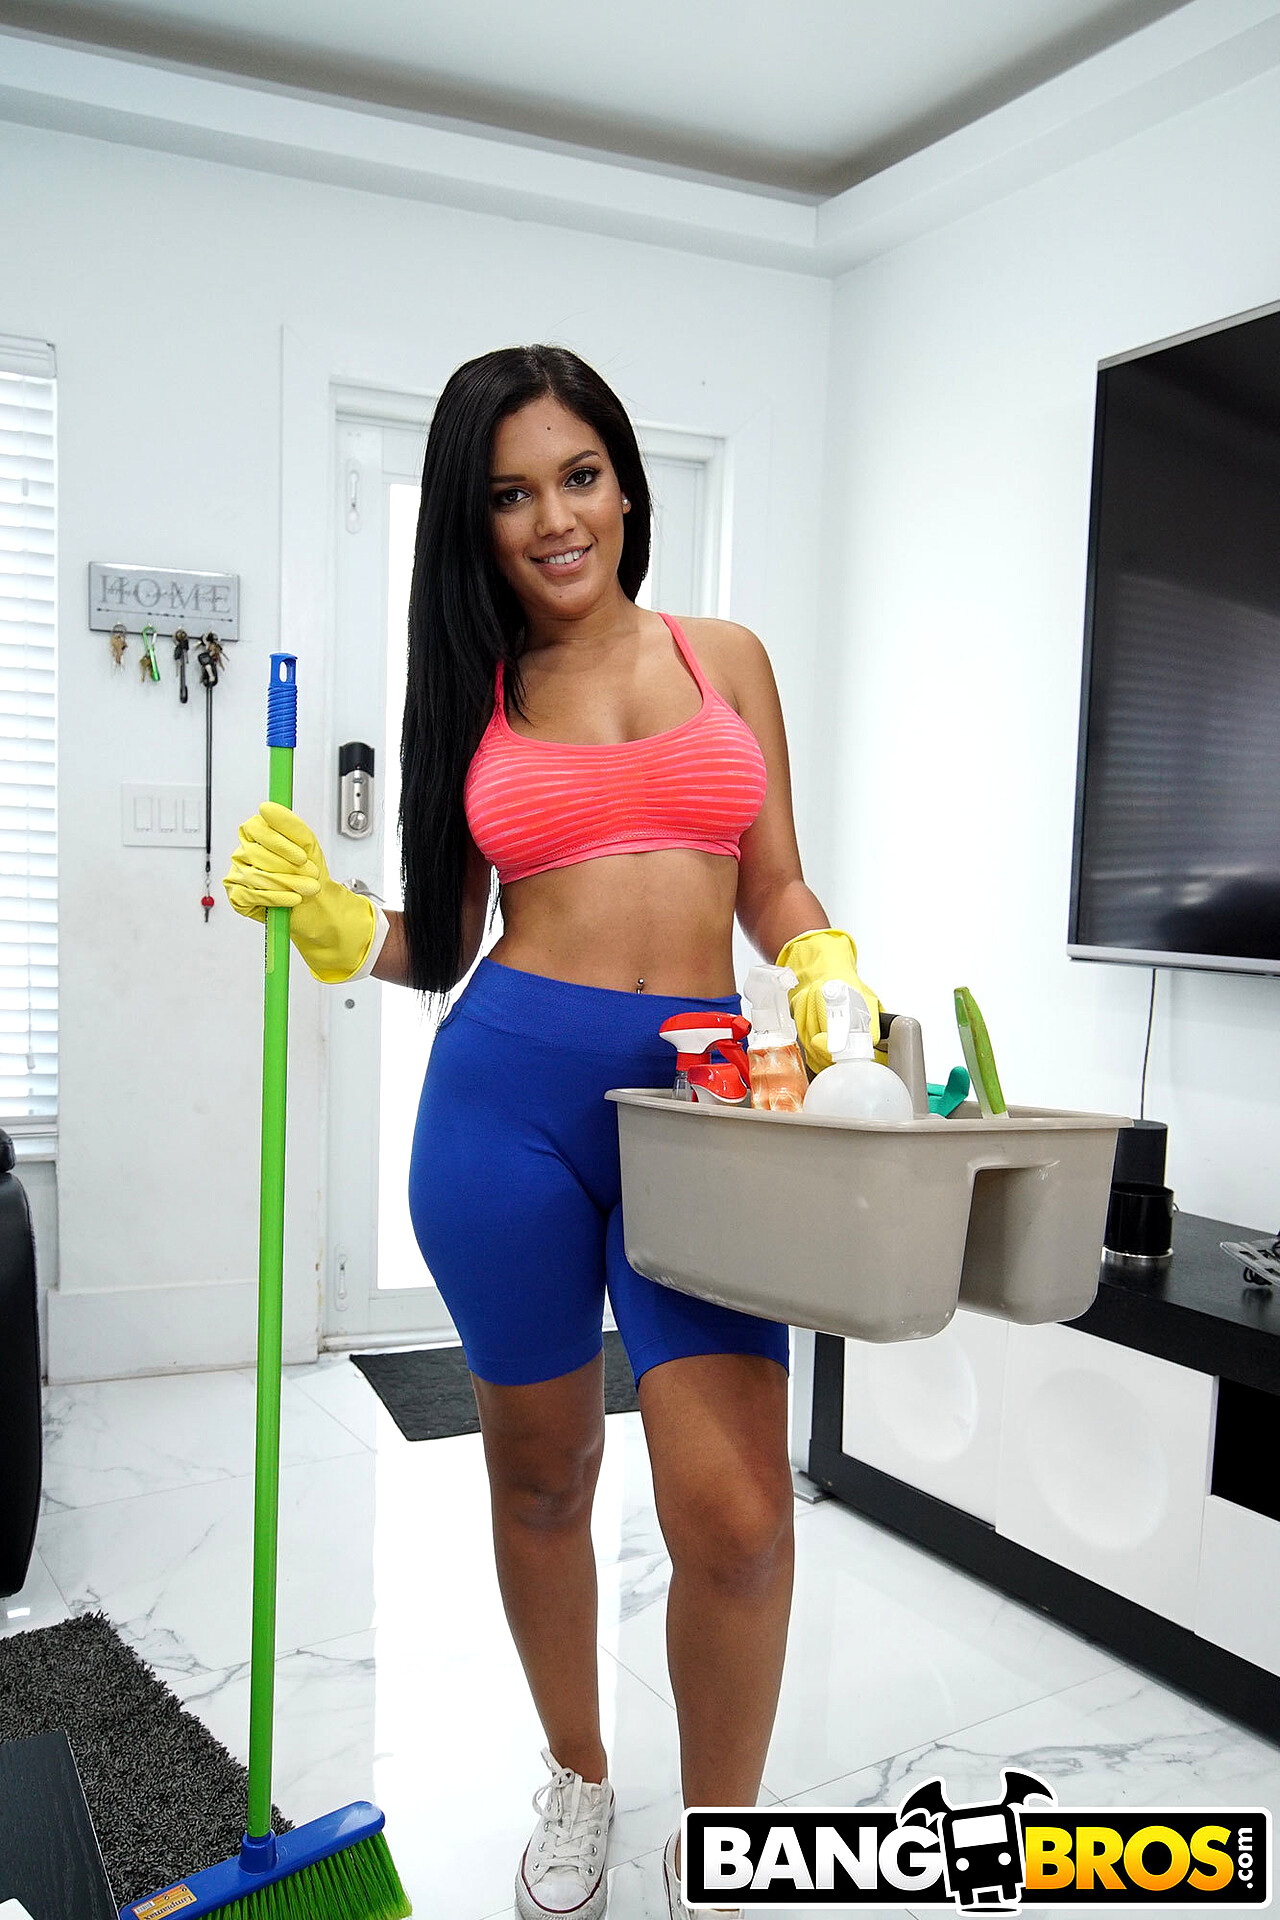 Ttt Pornpics Bangbrosnetwork Alina Belle Xxxmag Kitchen Maid Images-7784